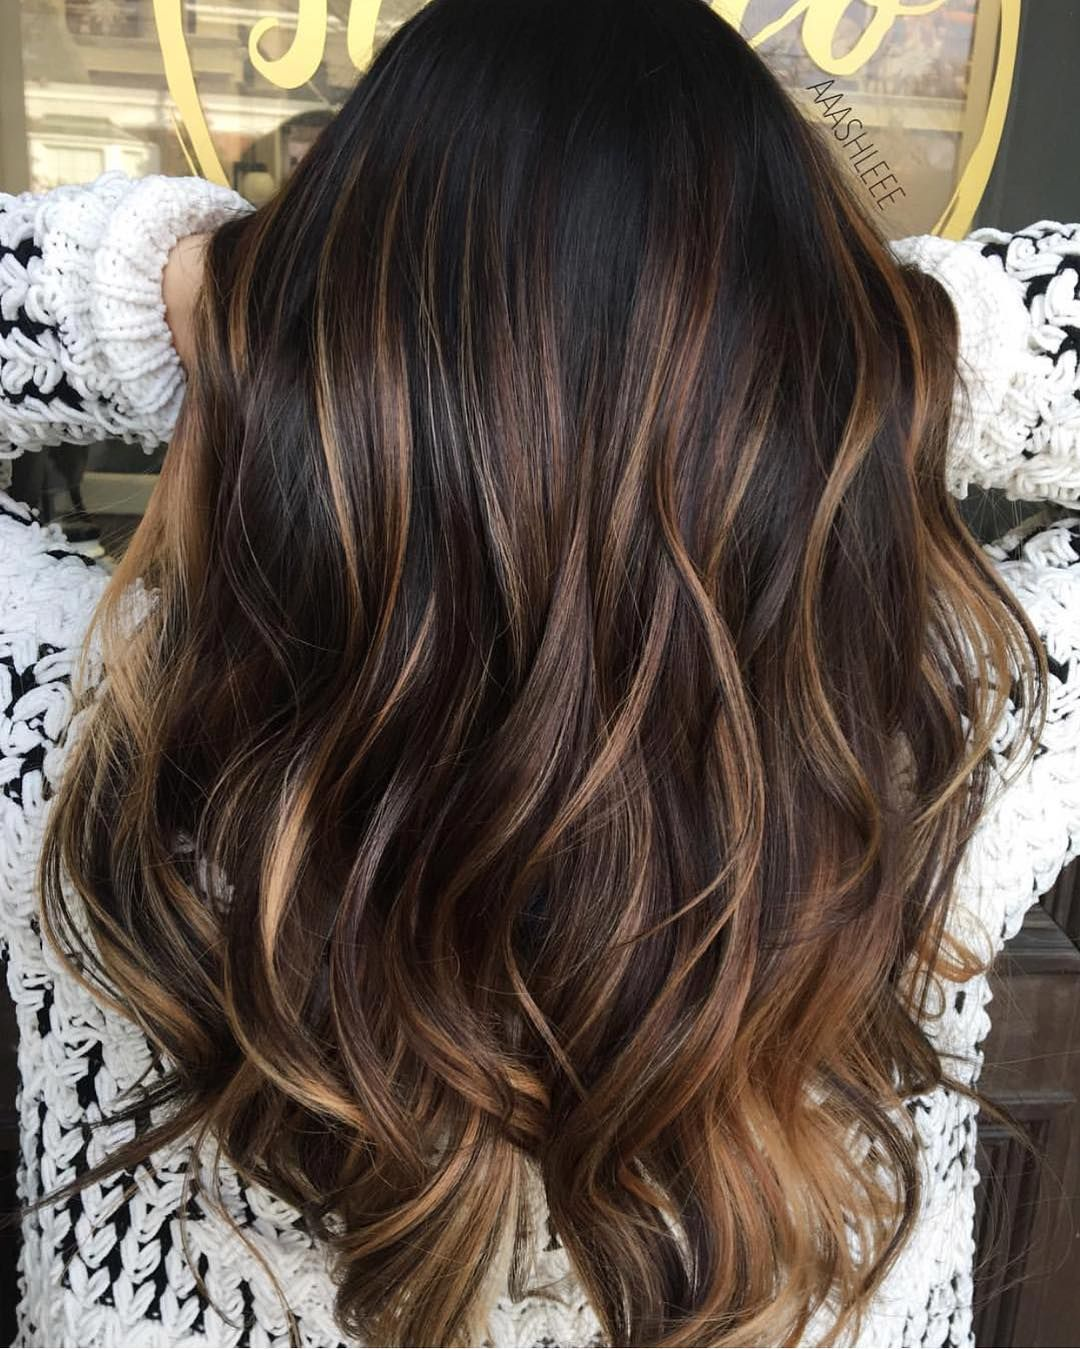 21 Balayage Dark Brown Hair Color Ideas For Changing Up